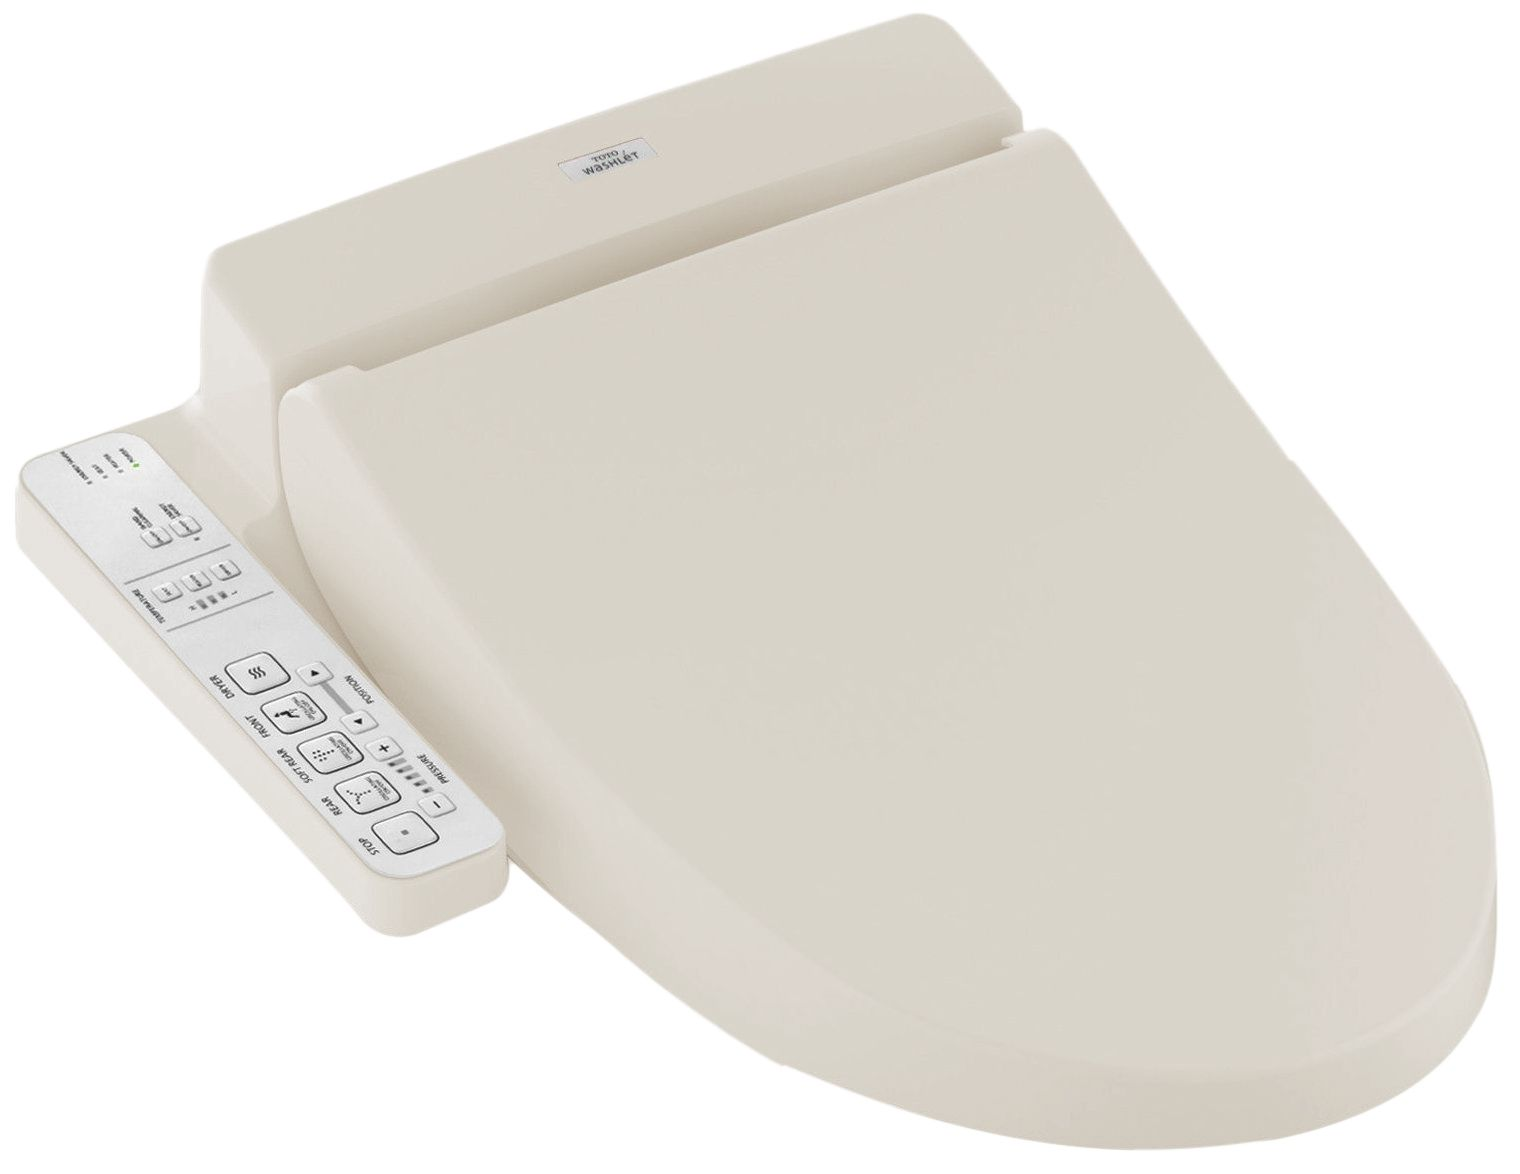 Toto Washlet C100 Electronic Bidet Toilet Seat With Premist